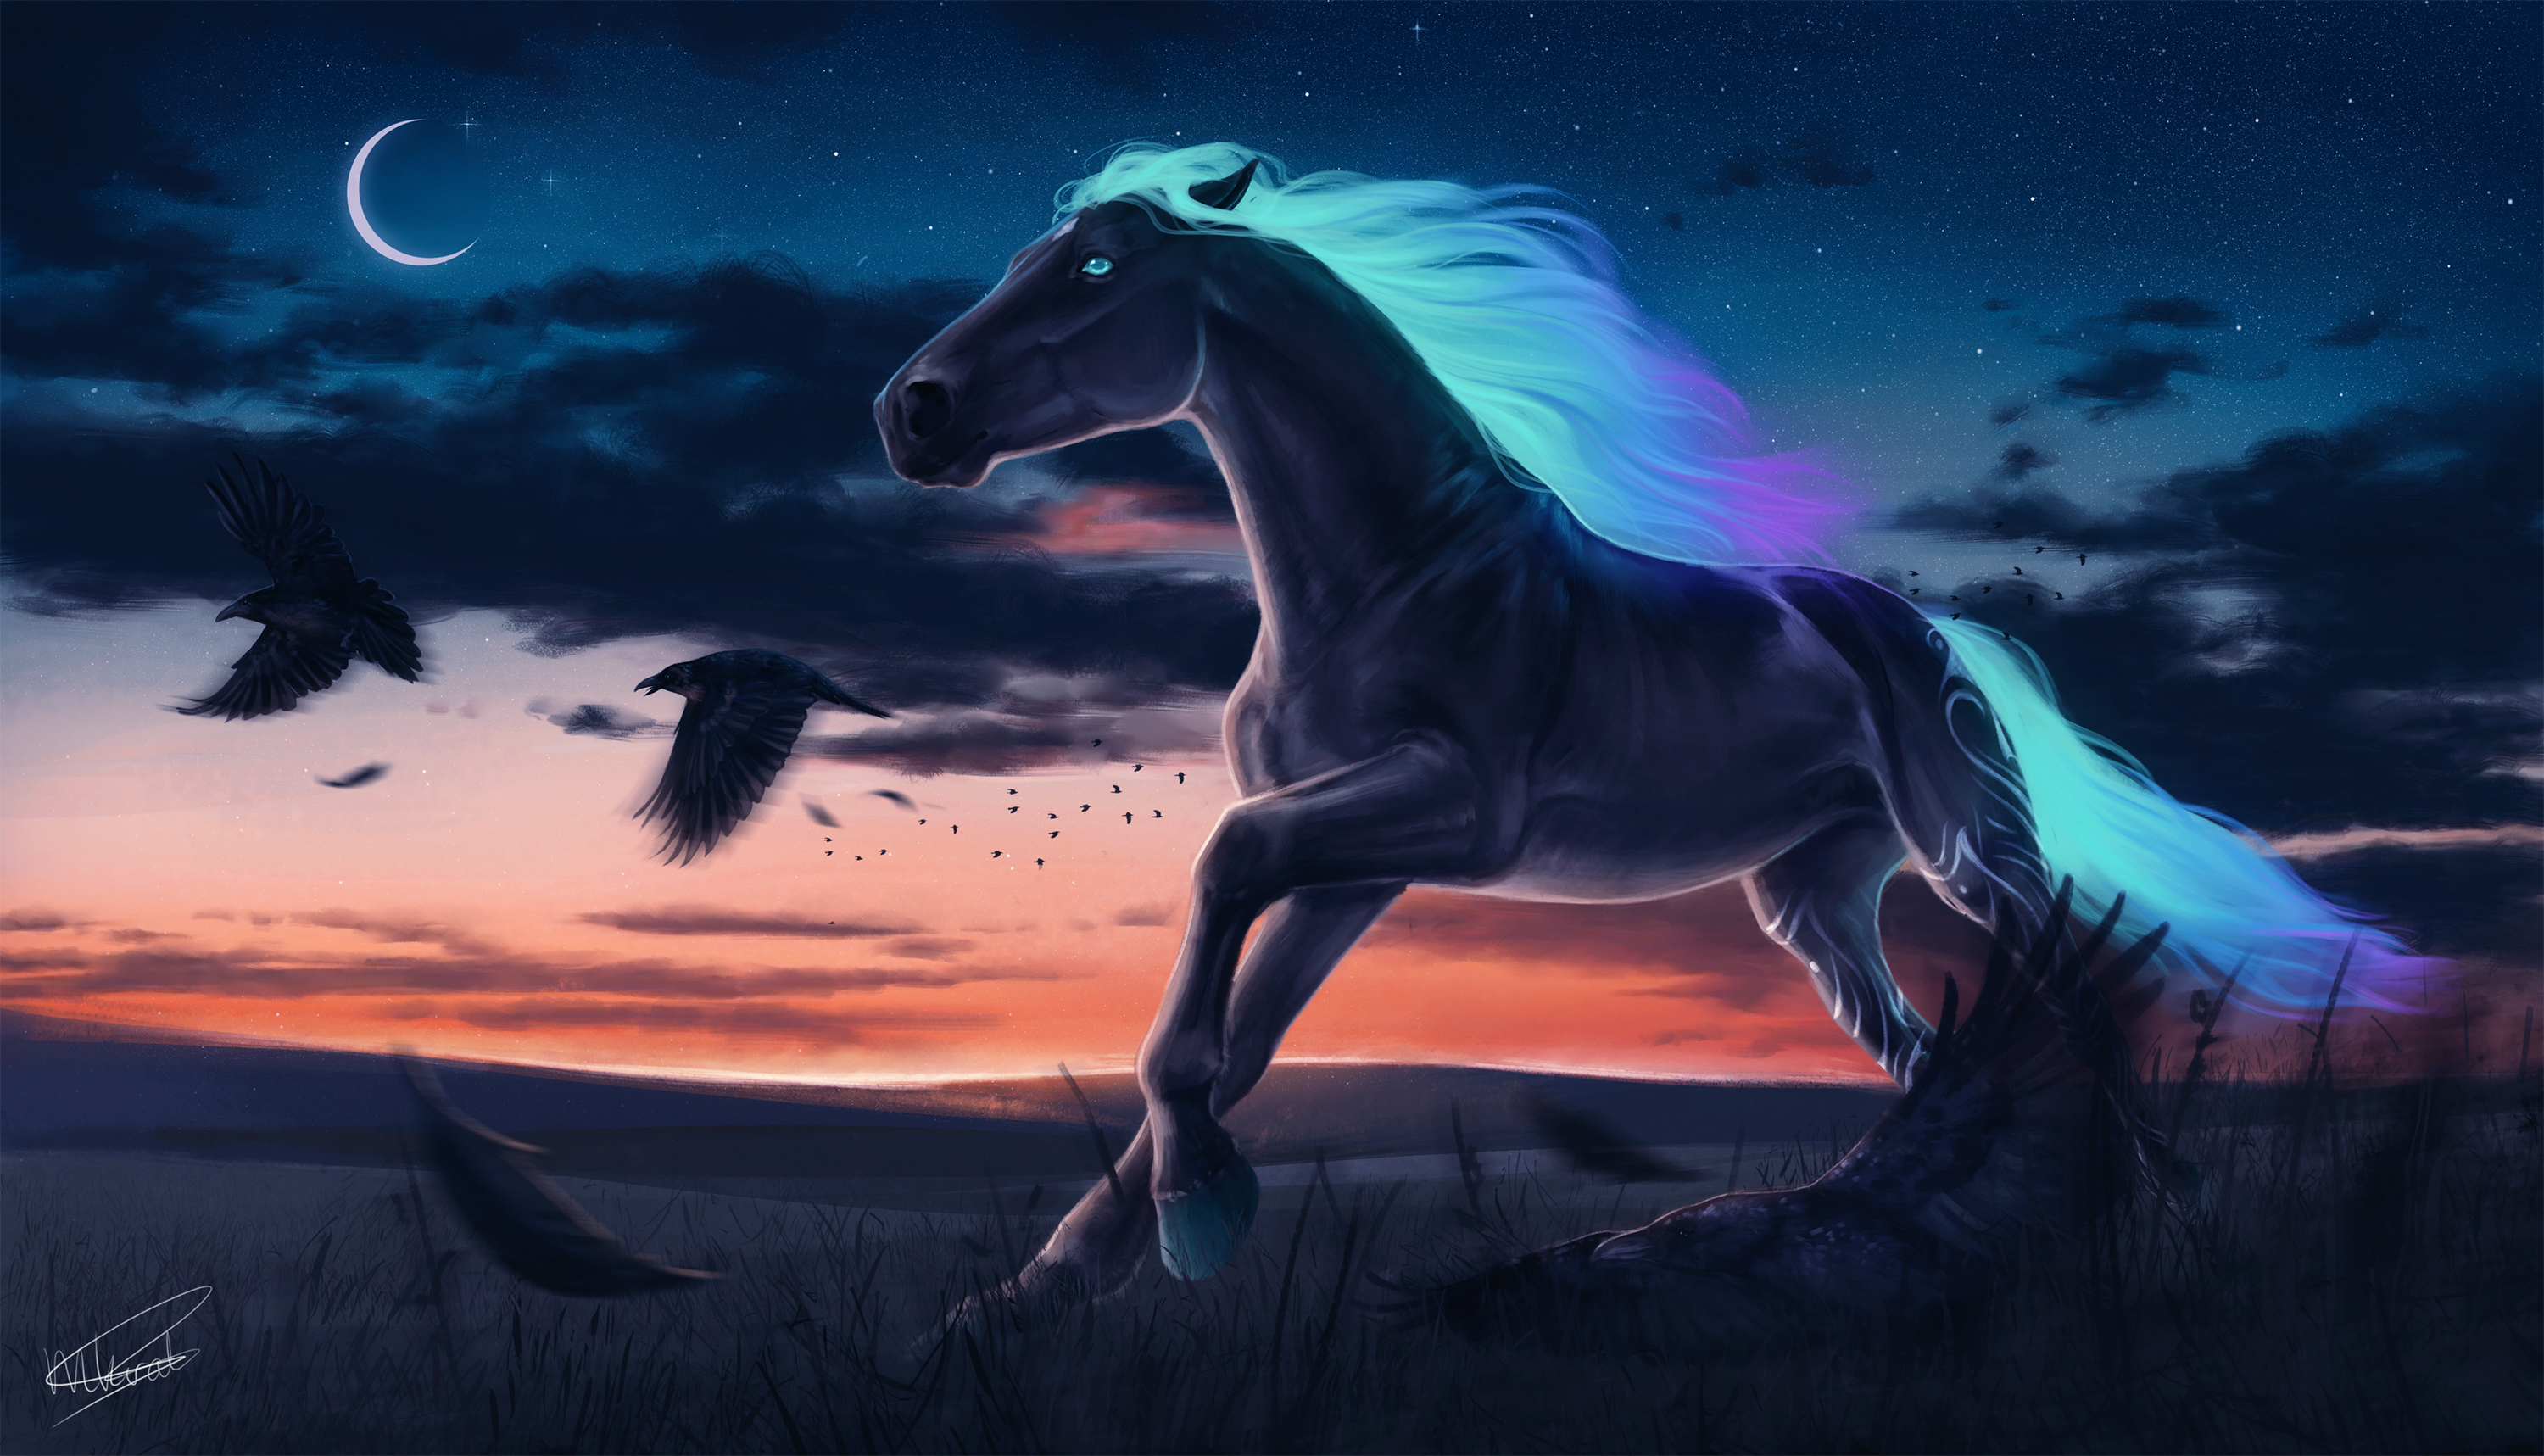 1366x768 Horse Magic Moon Digital Art 1366x768 Resolution Hd 4k Wallpapers Images Backgrounds Photos And Pictures